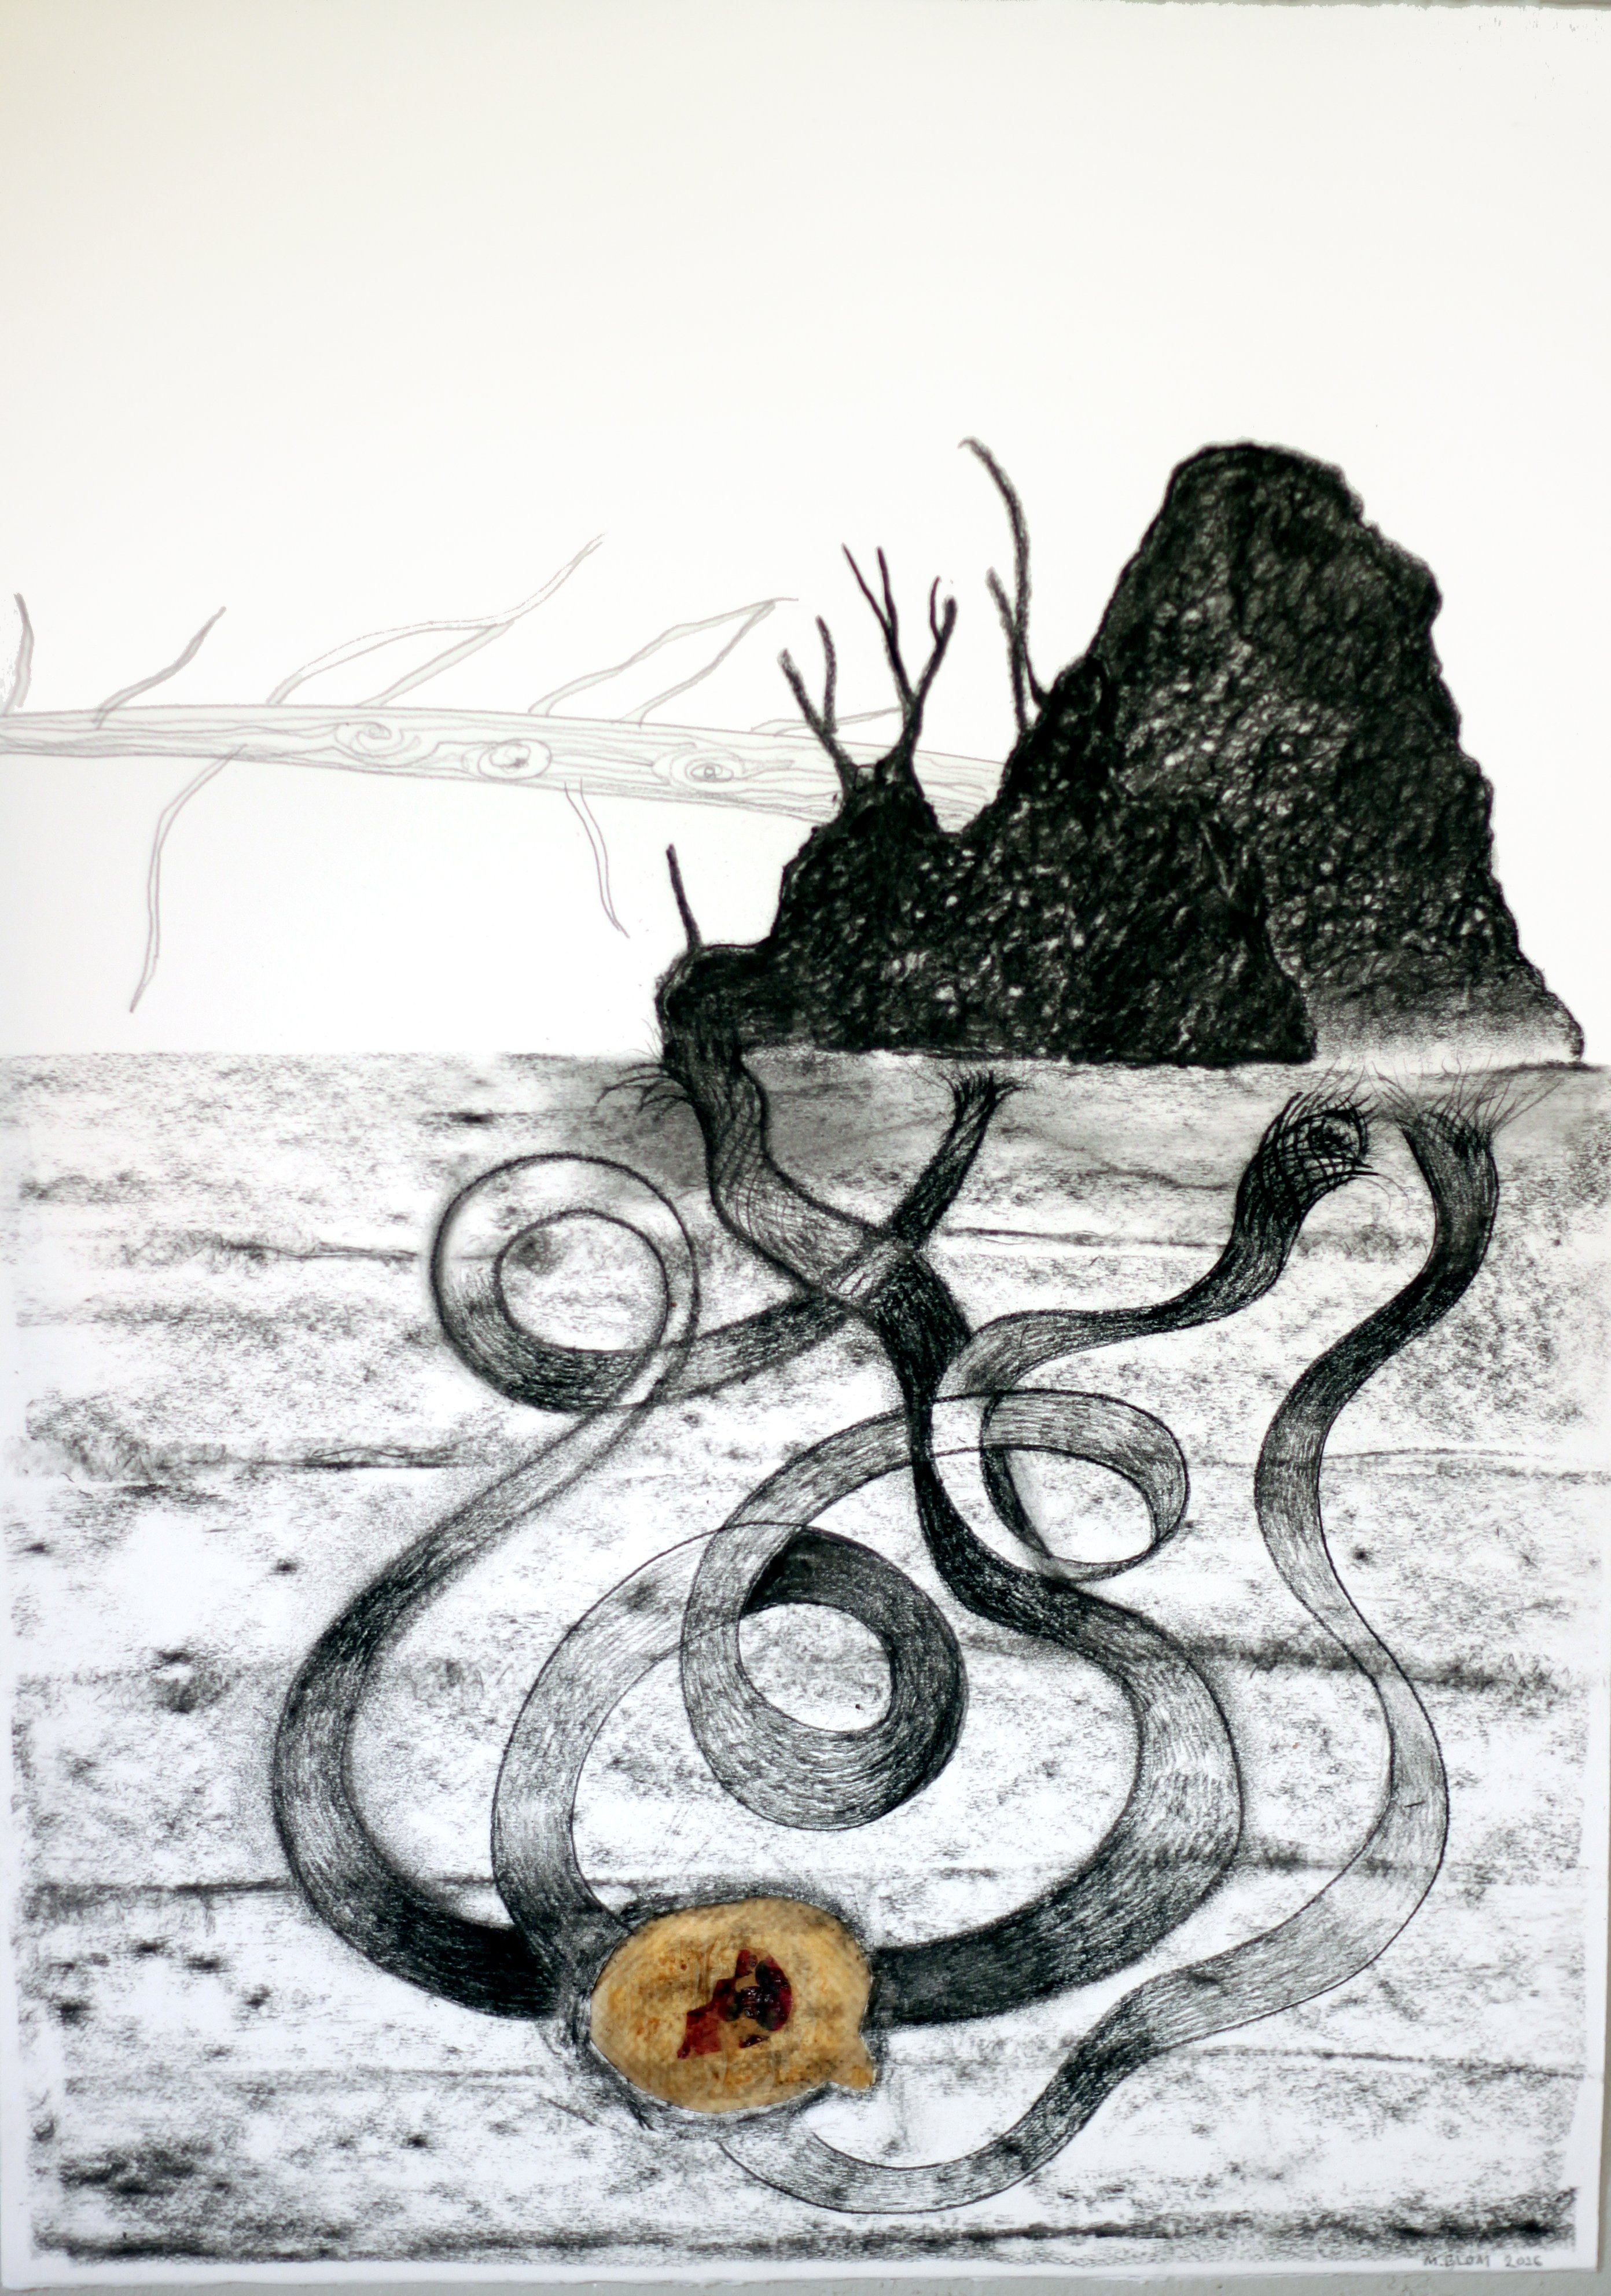 Rotvälta / Uprooted (2016) stained greaseproof paper and charcoal on paper, 50x70 cm